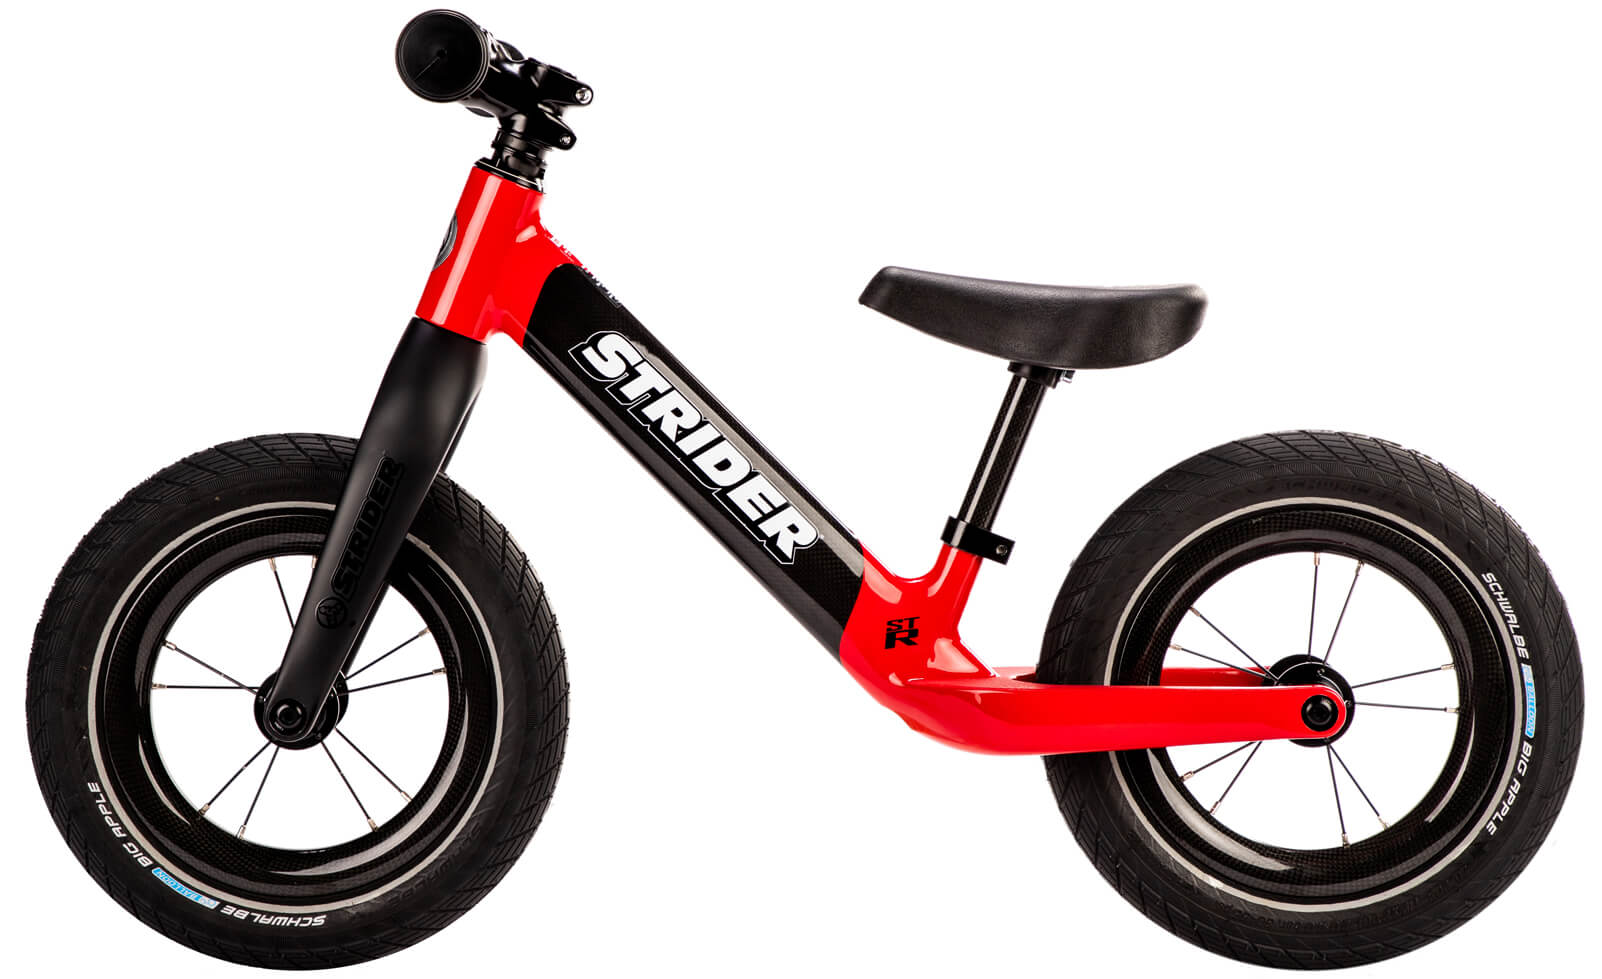 Strider ST-R Carbon Fiber Balance Bike